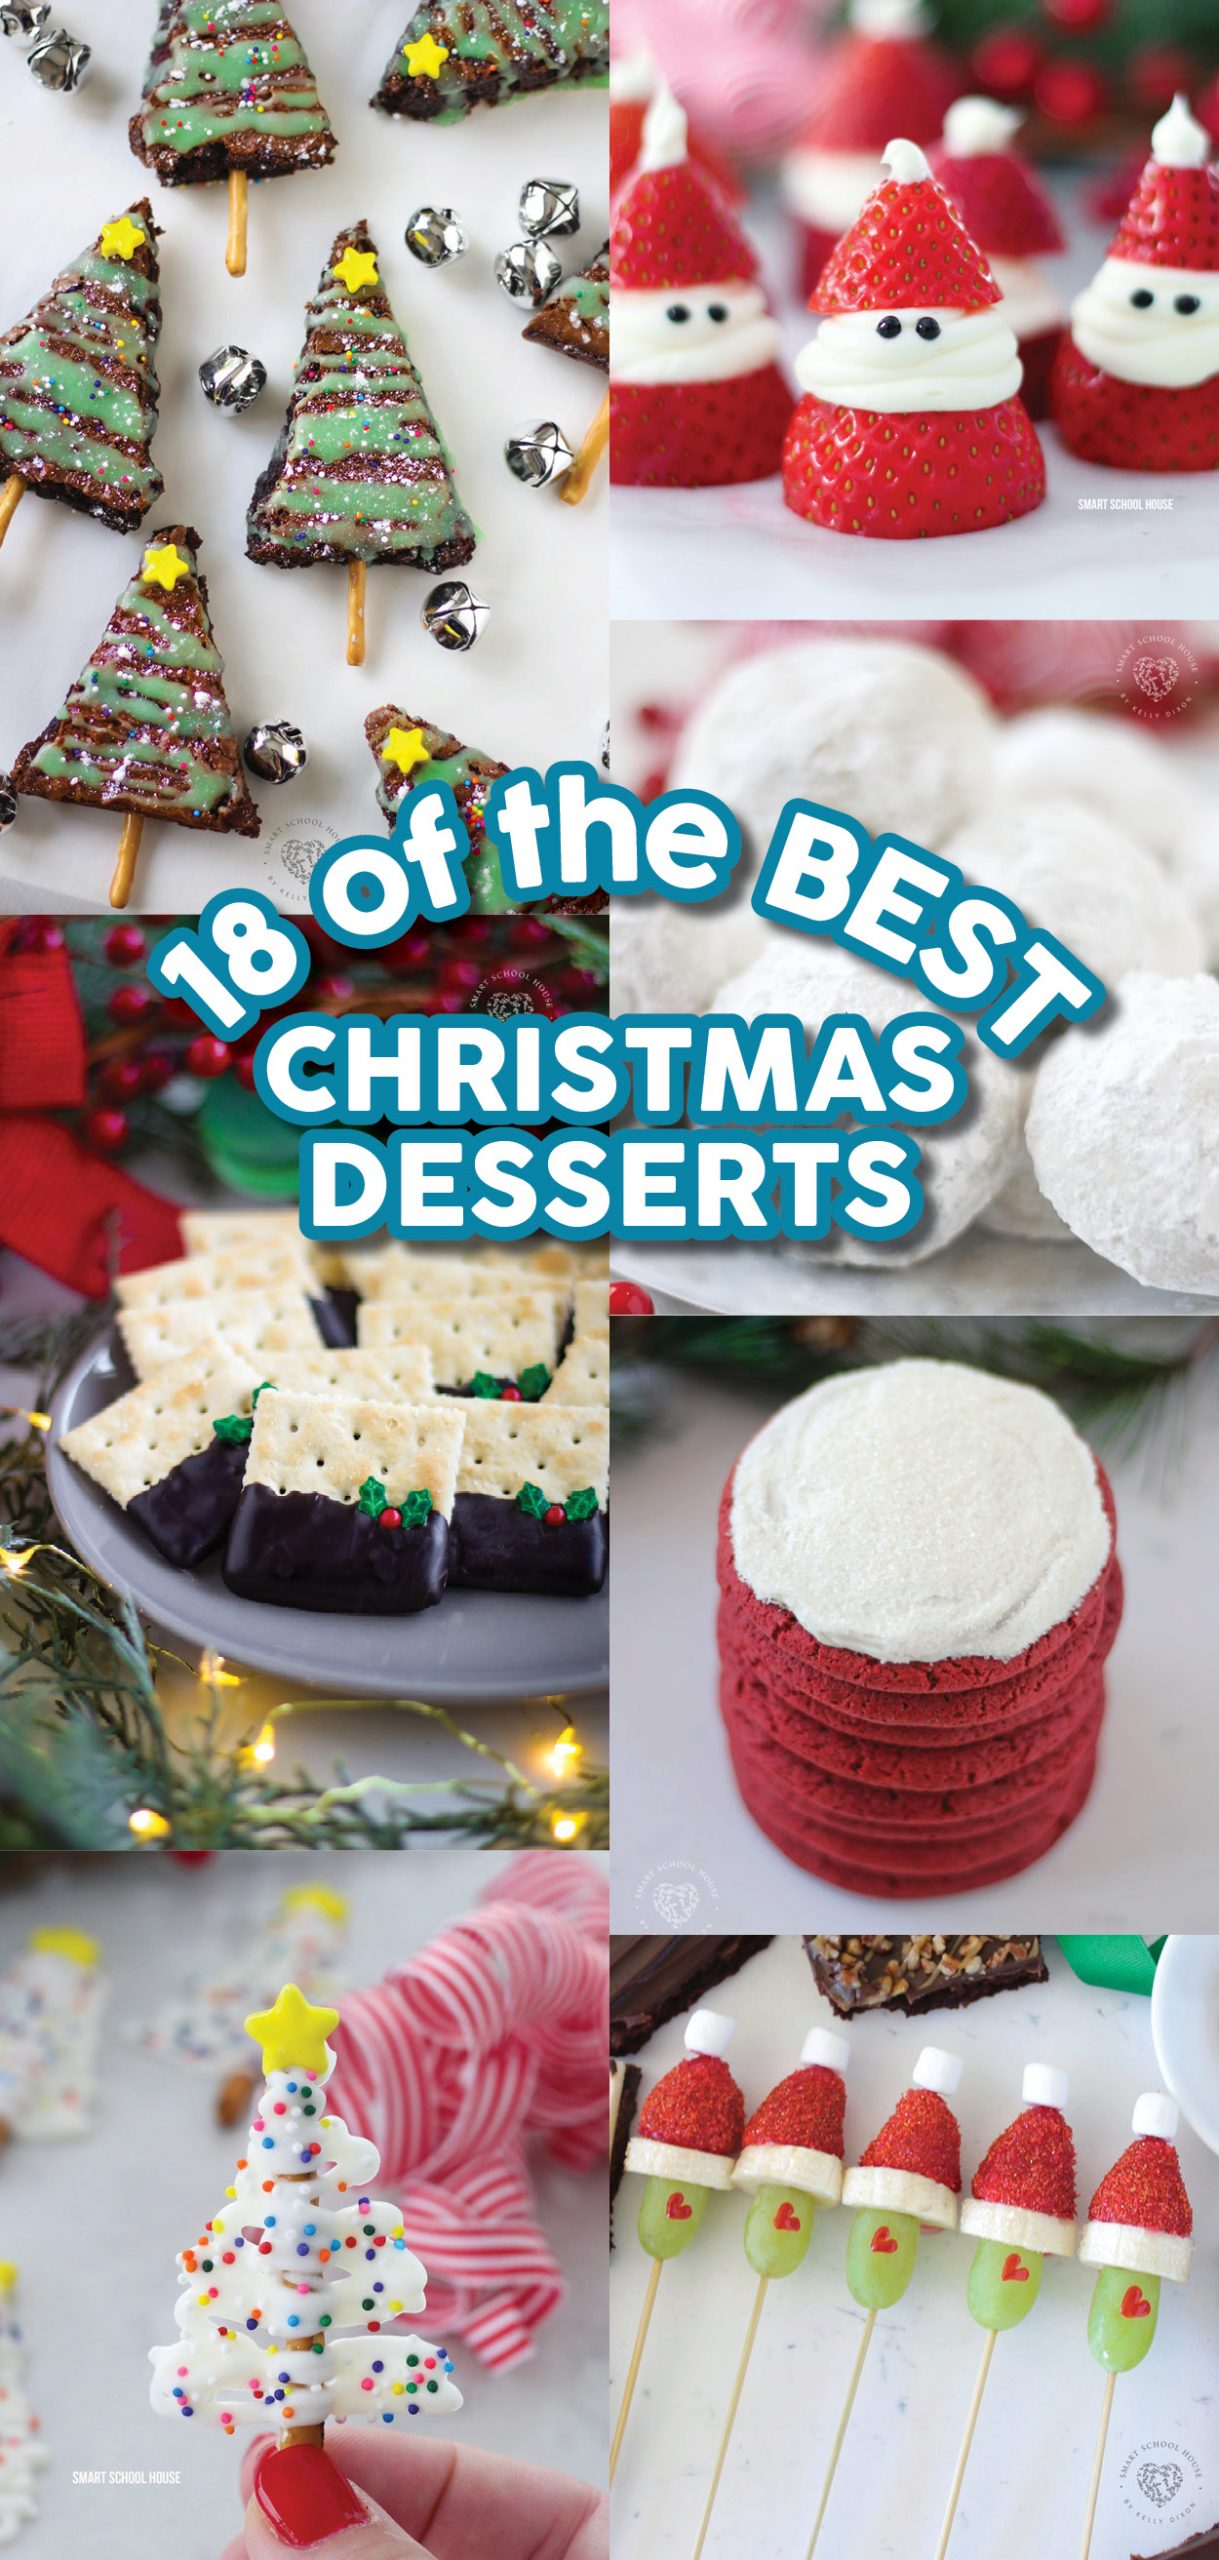 I've gathered the best Christmas Dessert Recipes to share with you today! Let's fa la la la la our way in love with holiday desserts! 'Tis the season to eat up, am I right?